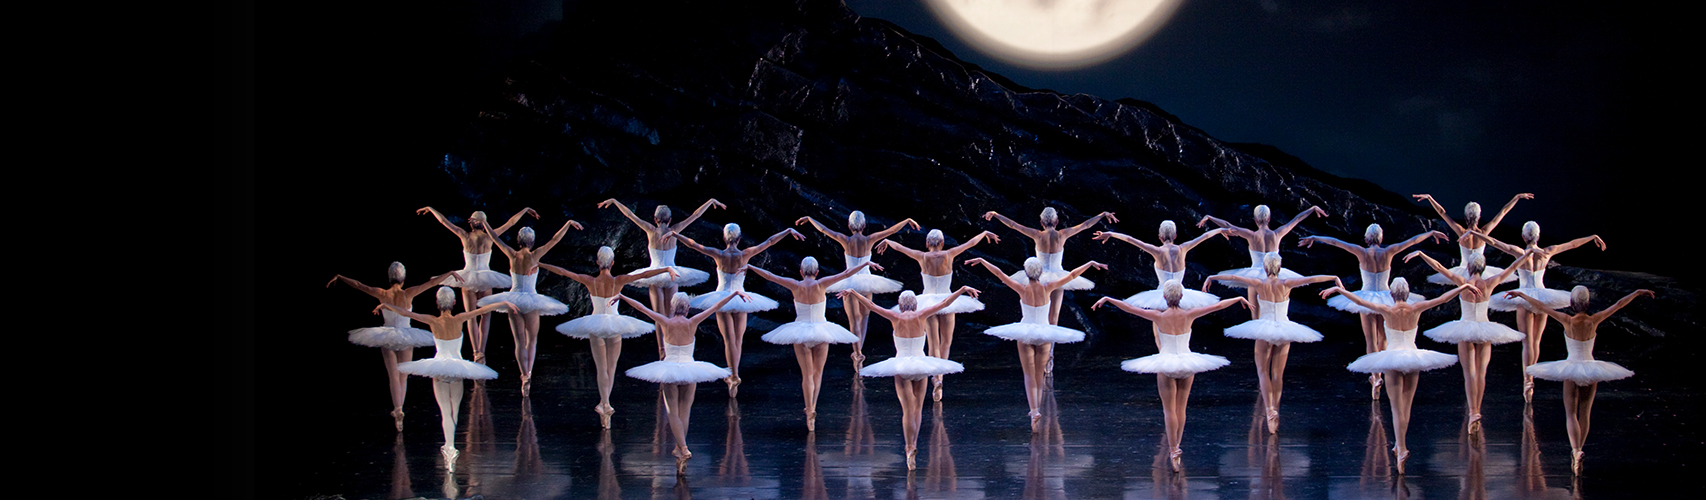 Three rows of swans—in white bodices, tutus, and skull caps—stand on pointe, facing a full moon silhouetting two flying swans